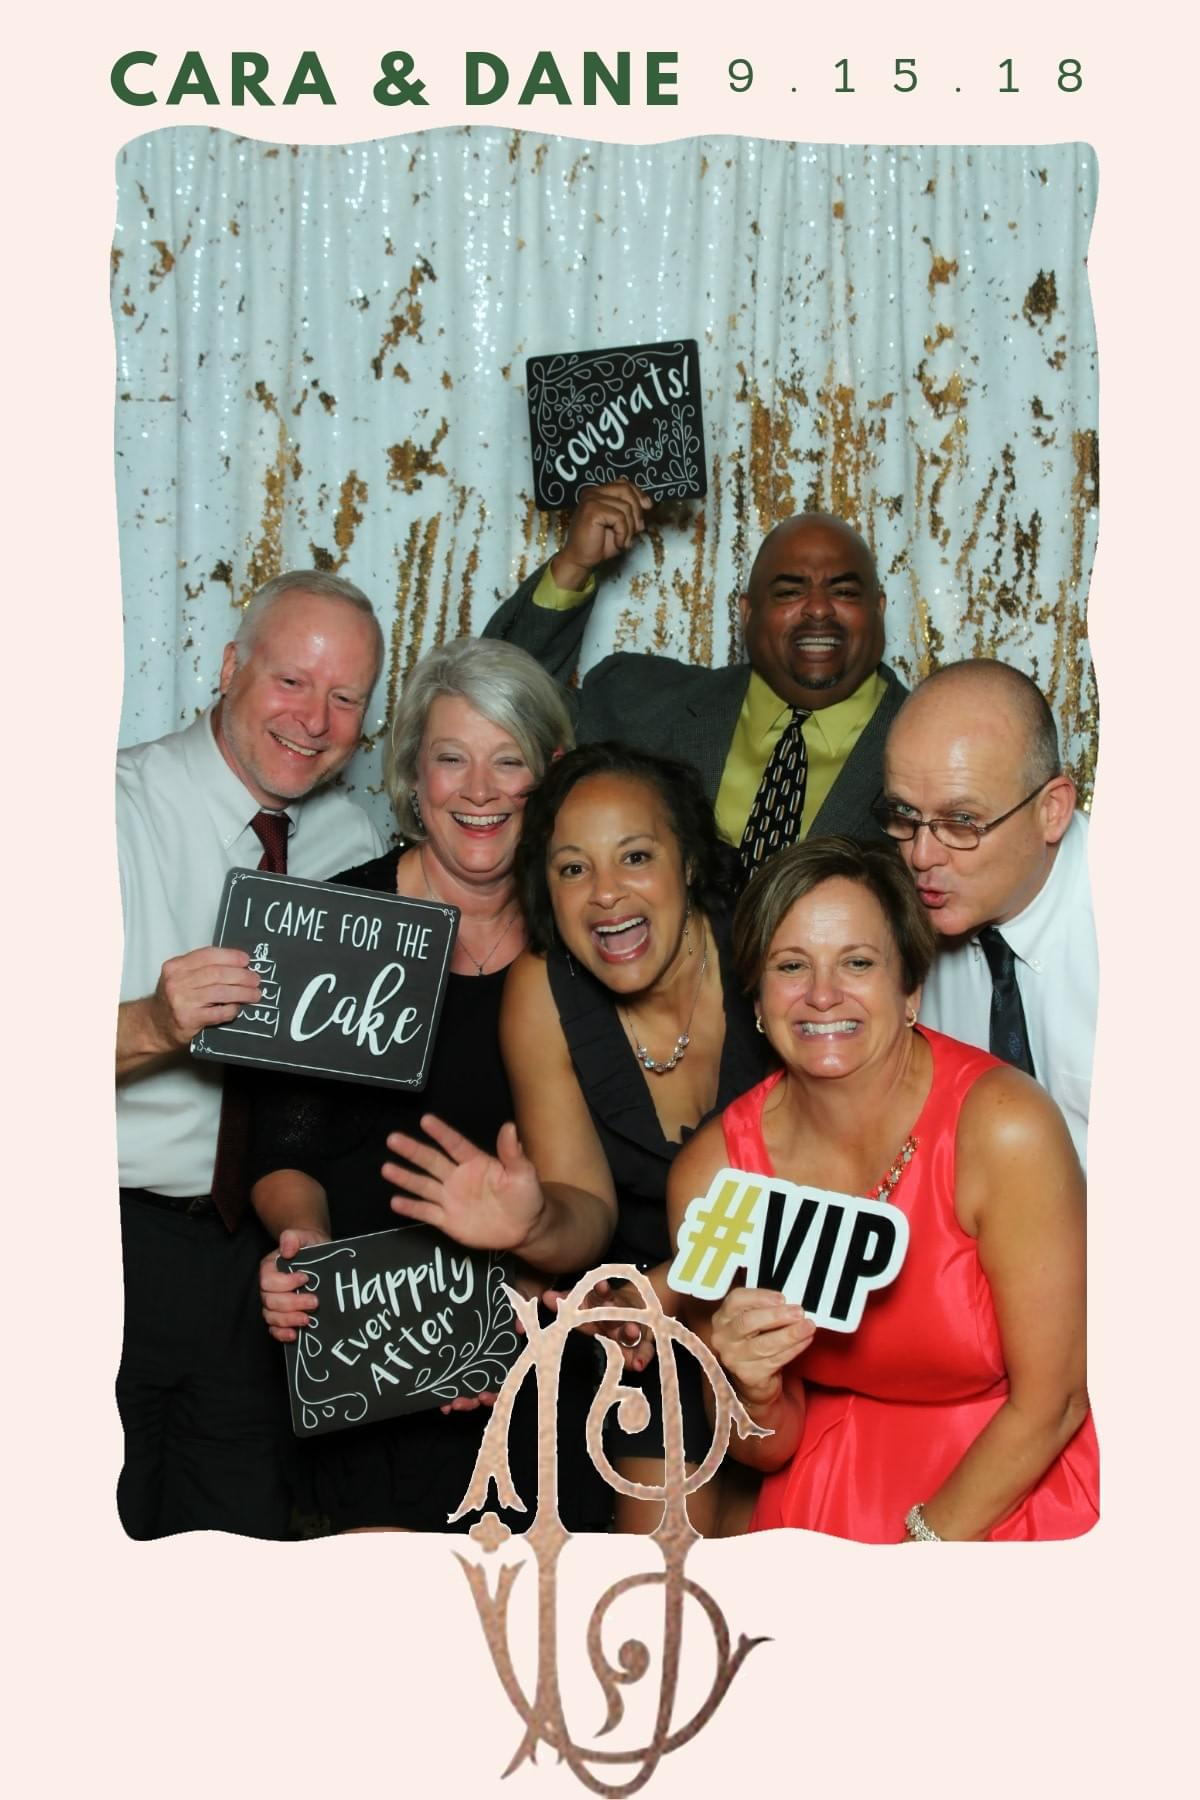 Happy guests at the Stone Ridge Hollow wedding with The Magic Selfie Mirror.